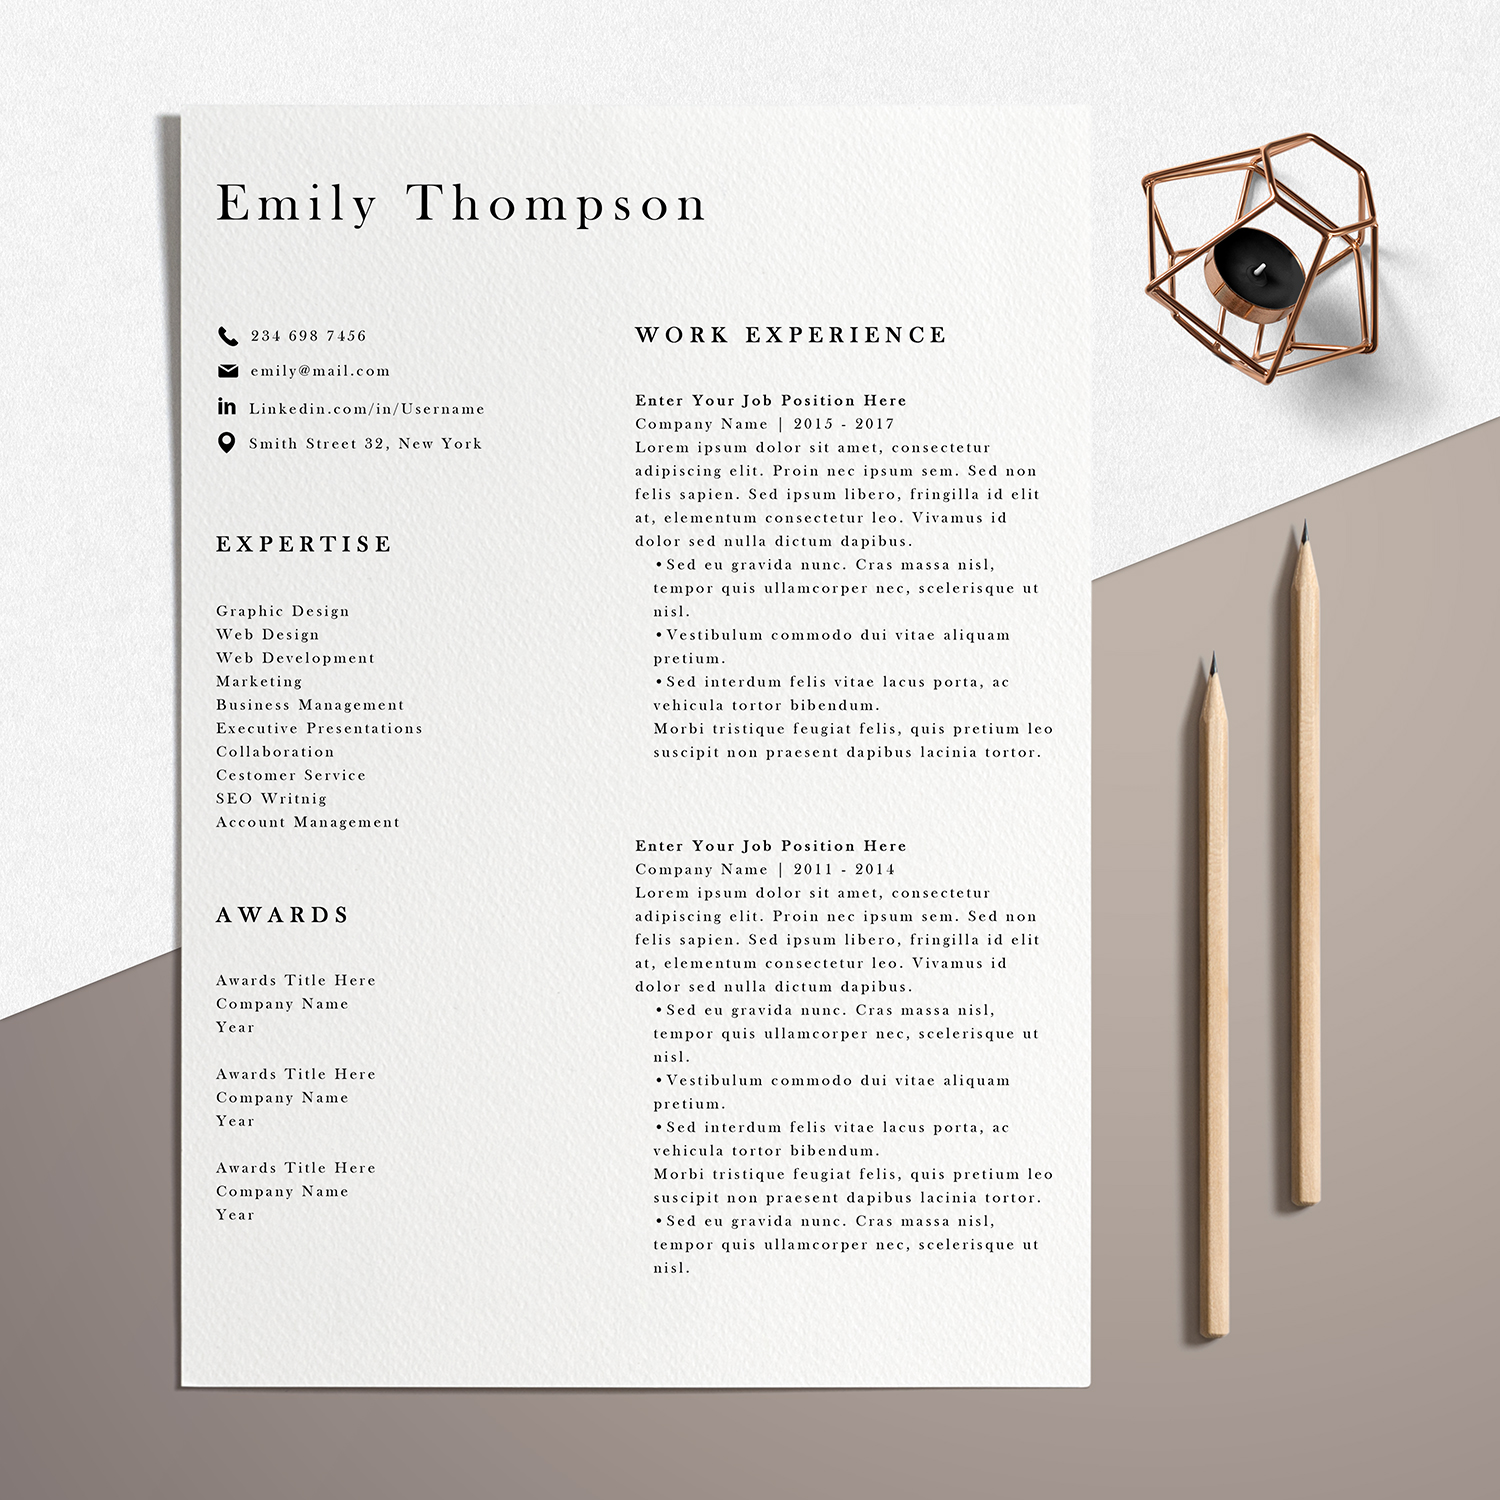 Resume Template | Photoshop CV Template - Emily example image 3